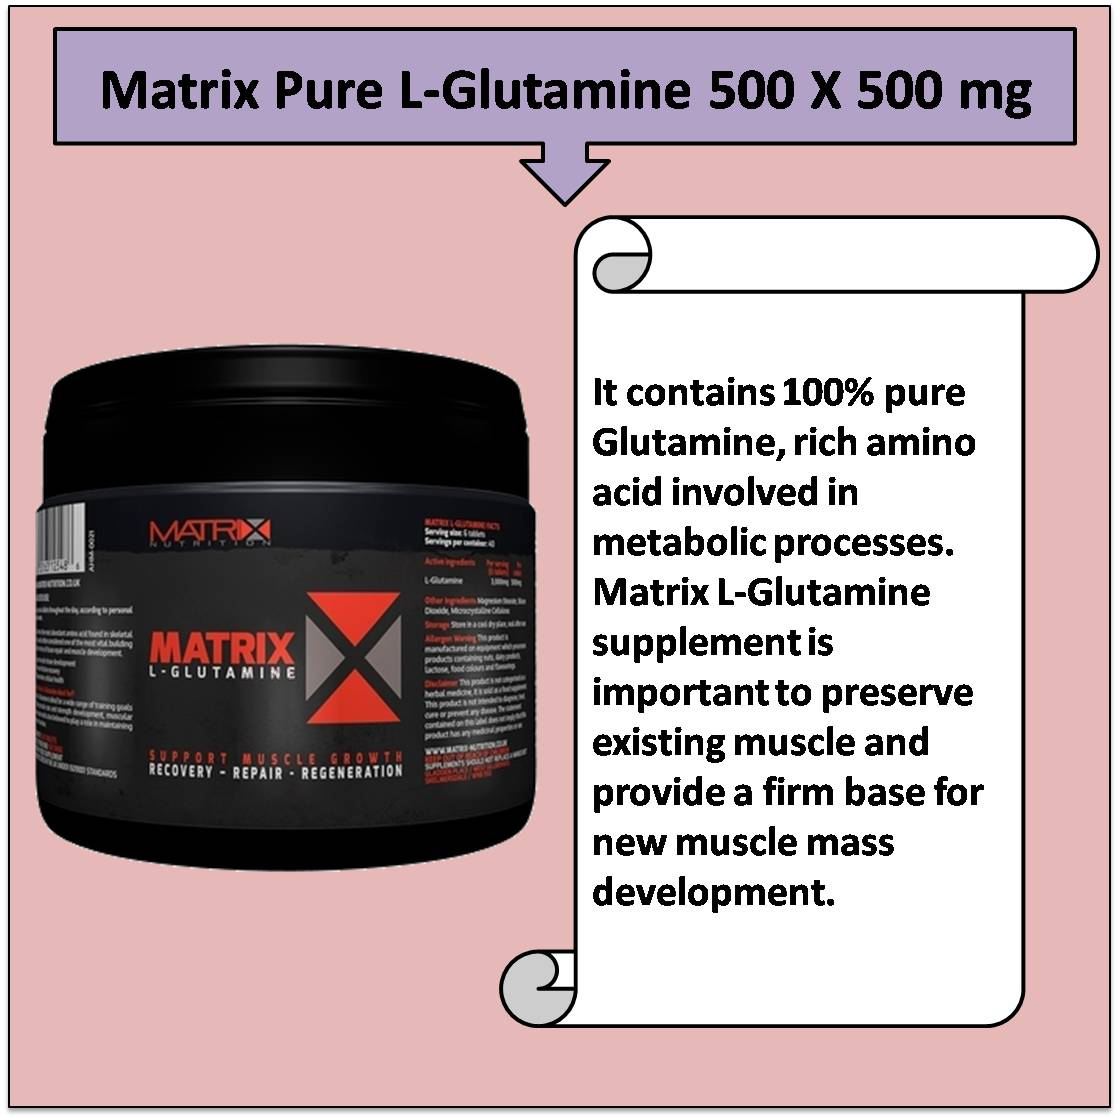 Matrix Pure L-Glutamine 500 X 500 mg